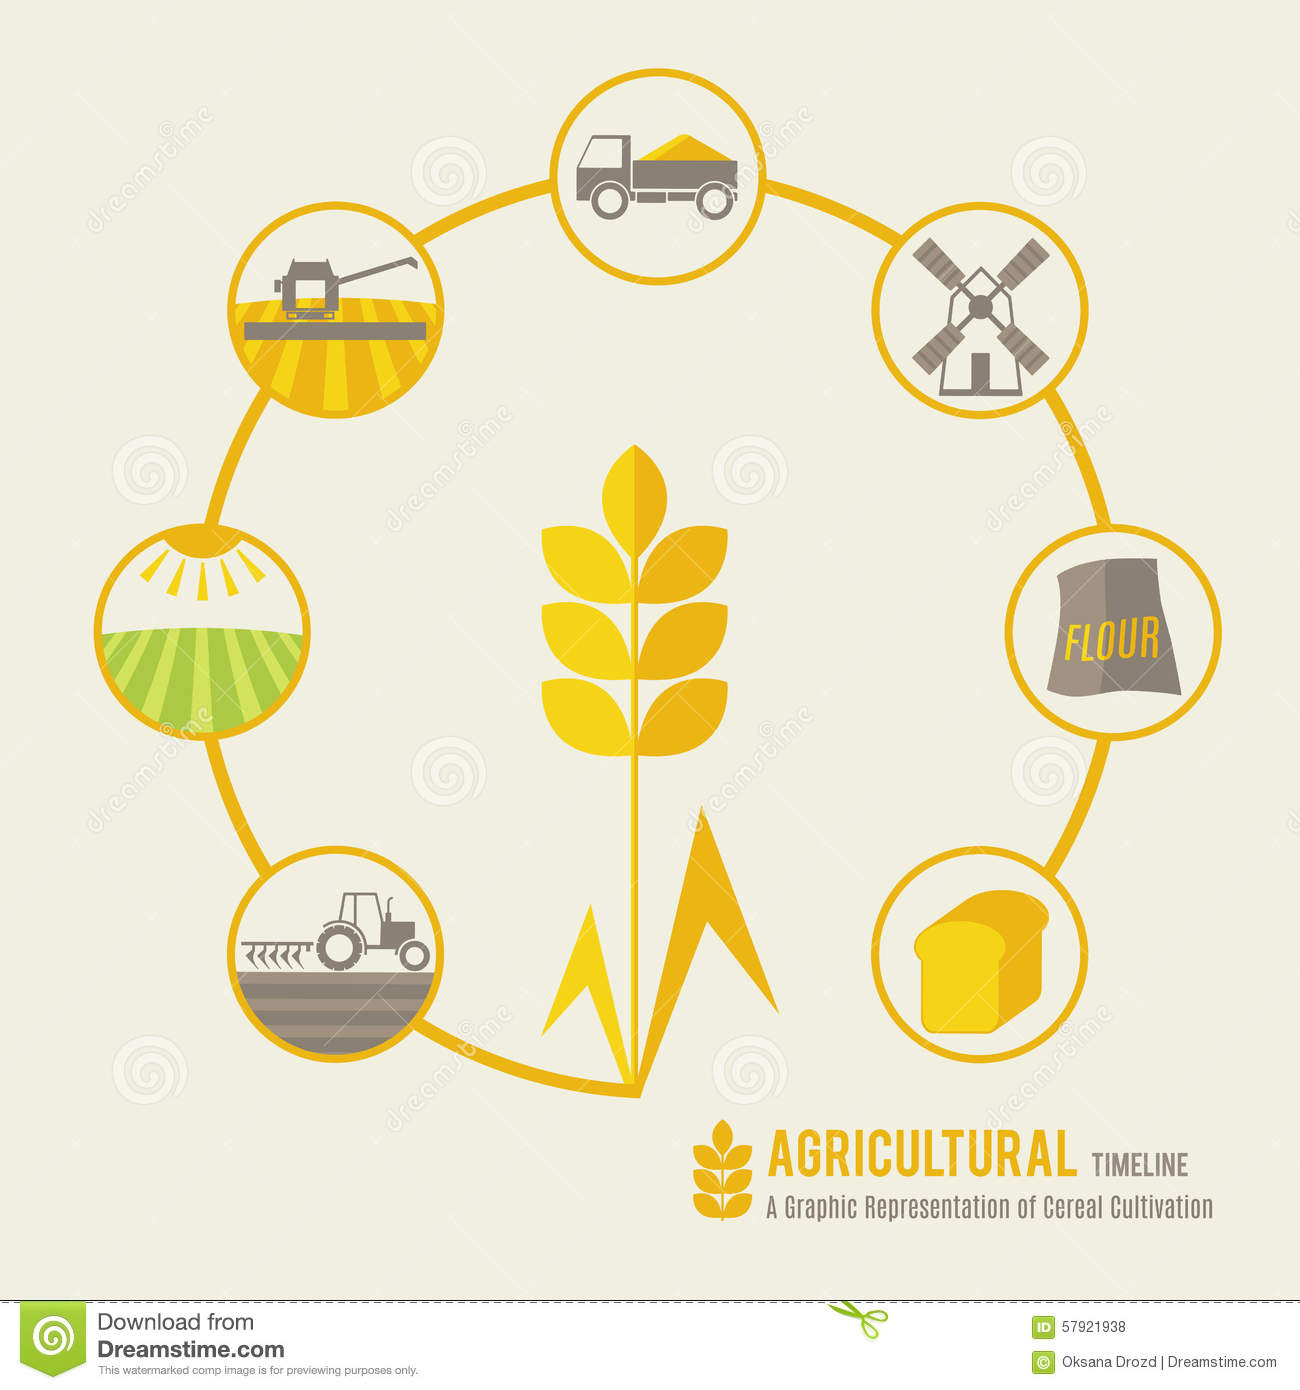 A Graphic Representation Of Cereal Cultivation Stock